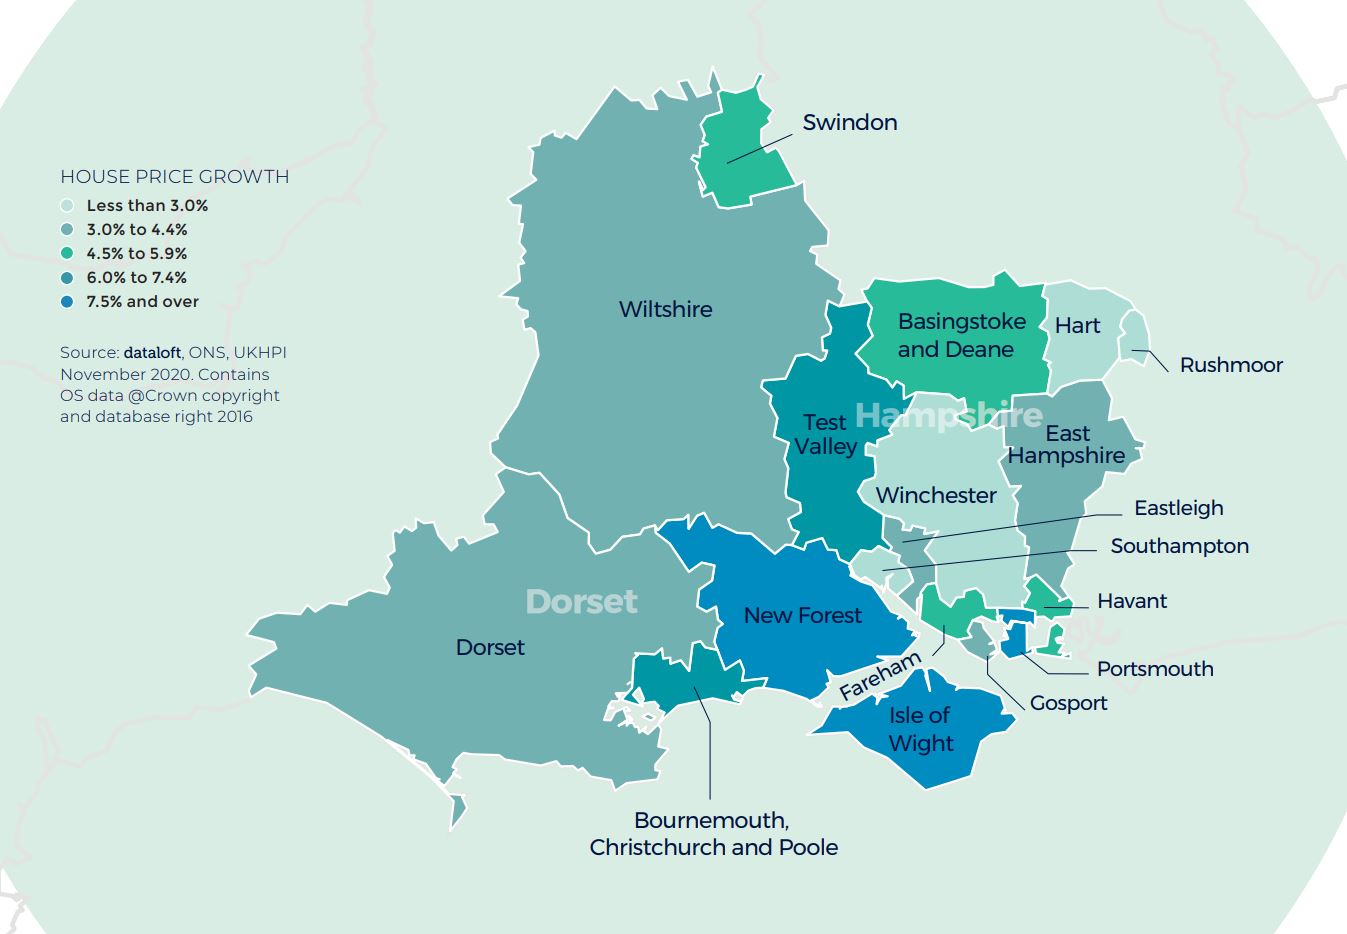 southern regional property market report house price growth